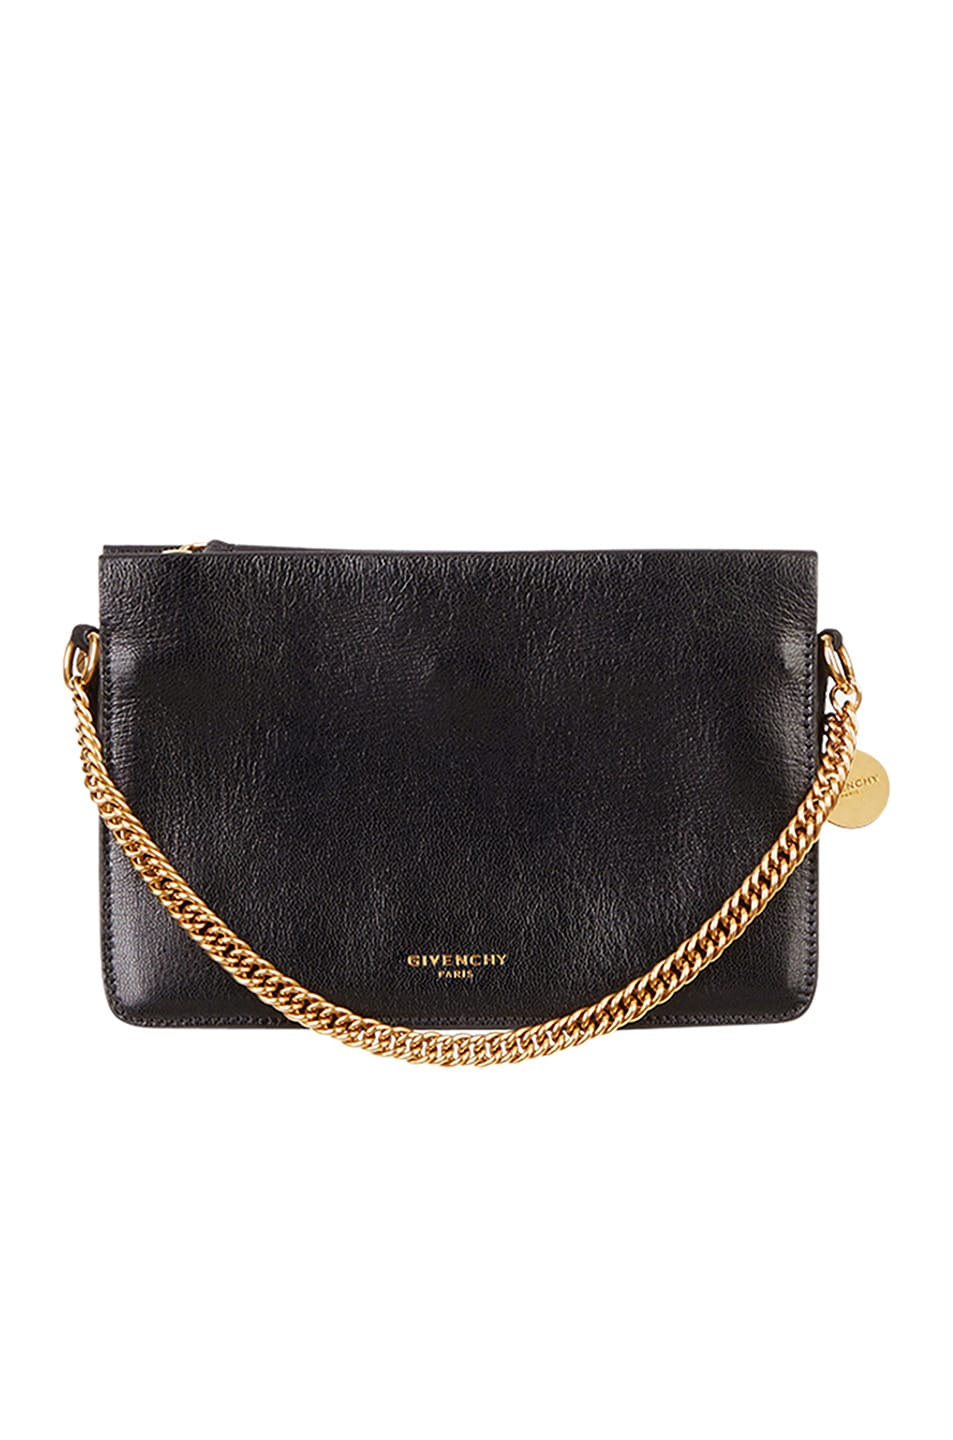 Image 1 of Givenchy Cross3 Leather Crossbody Bag in Black